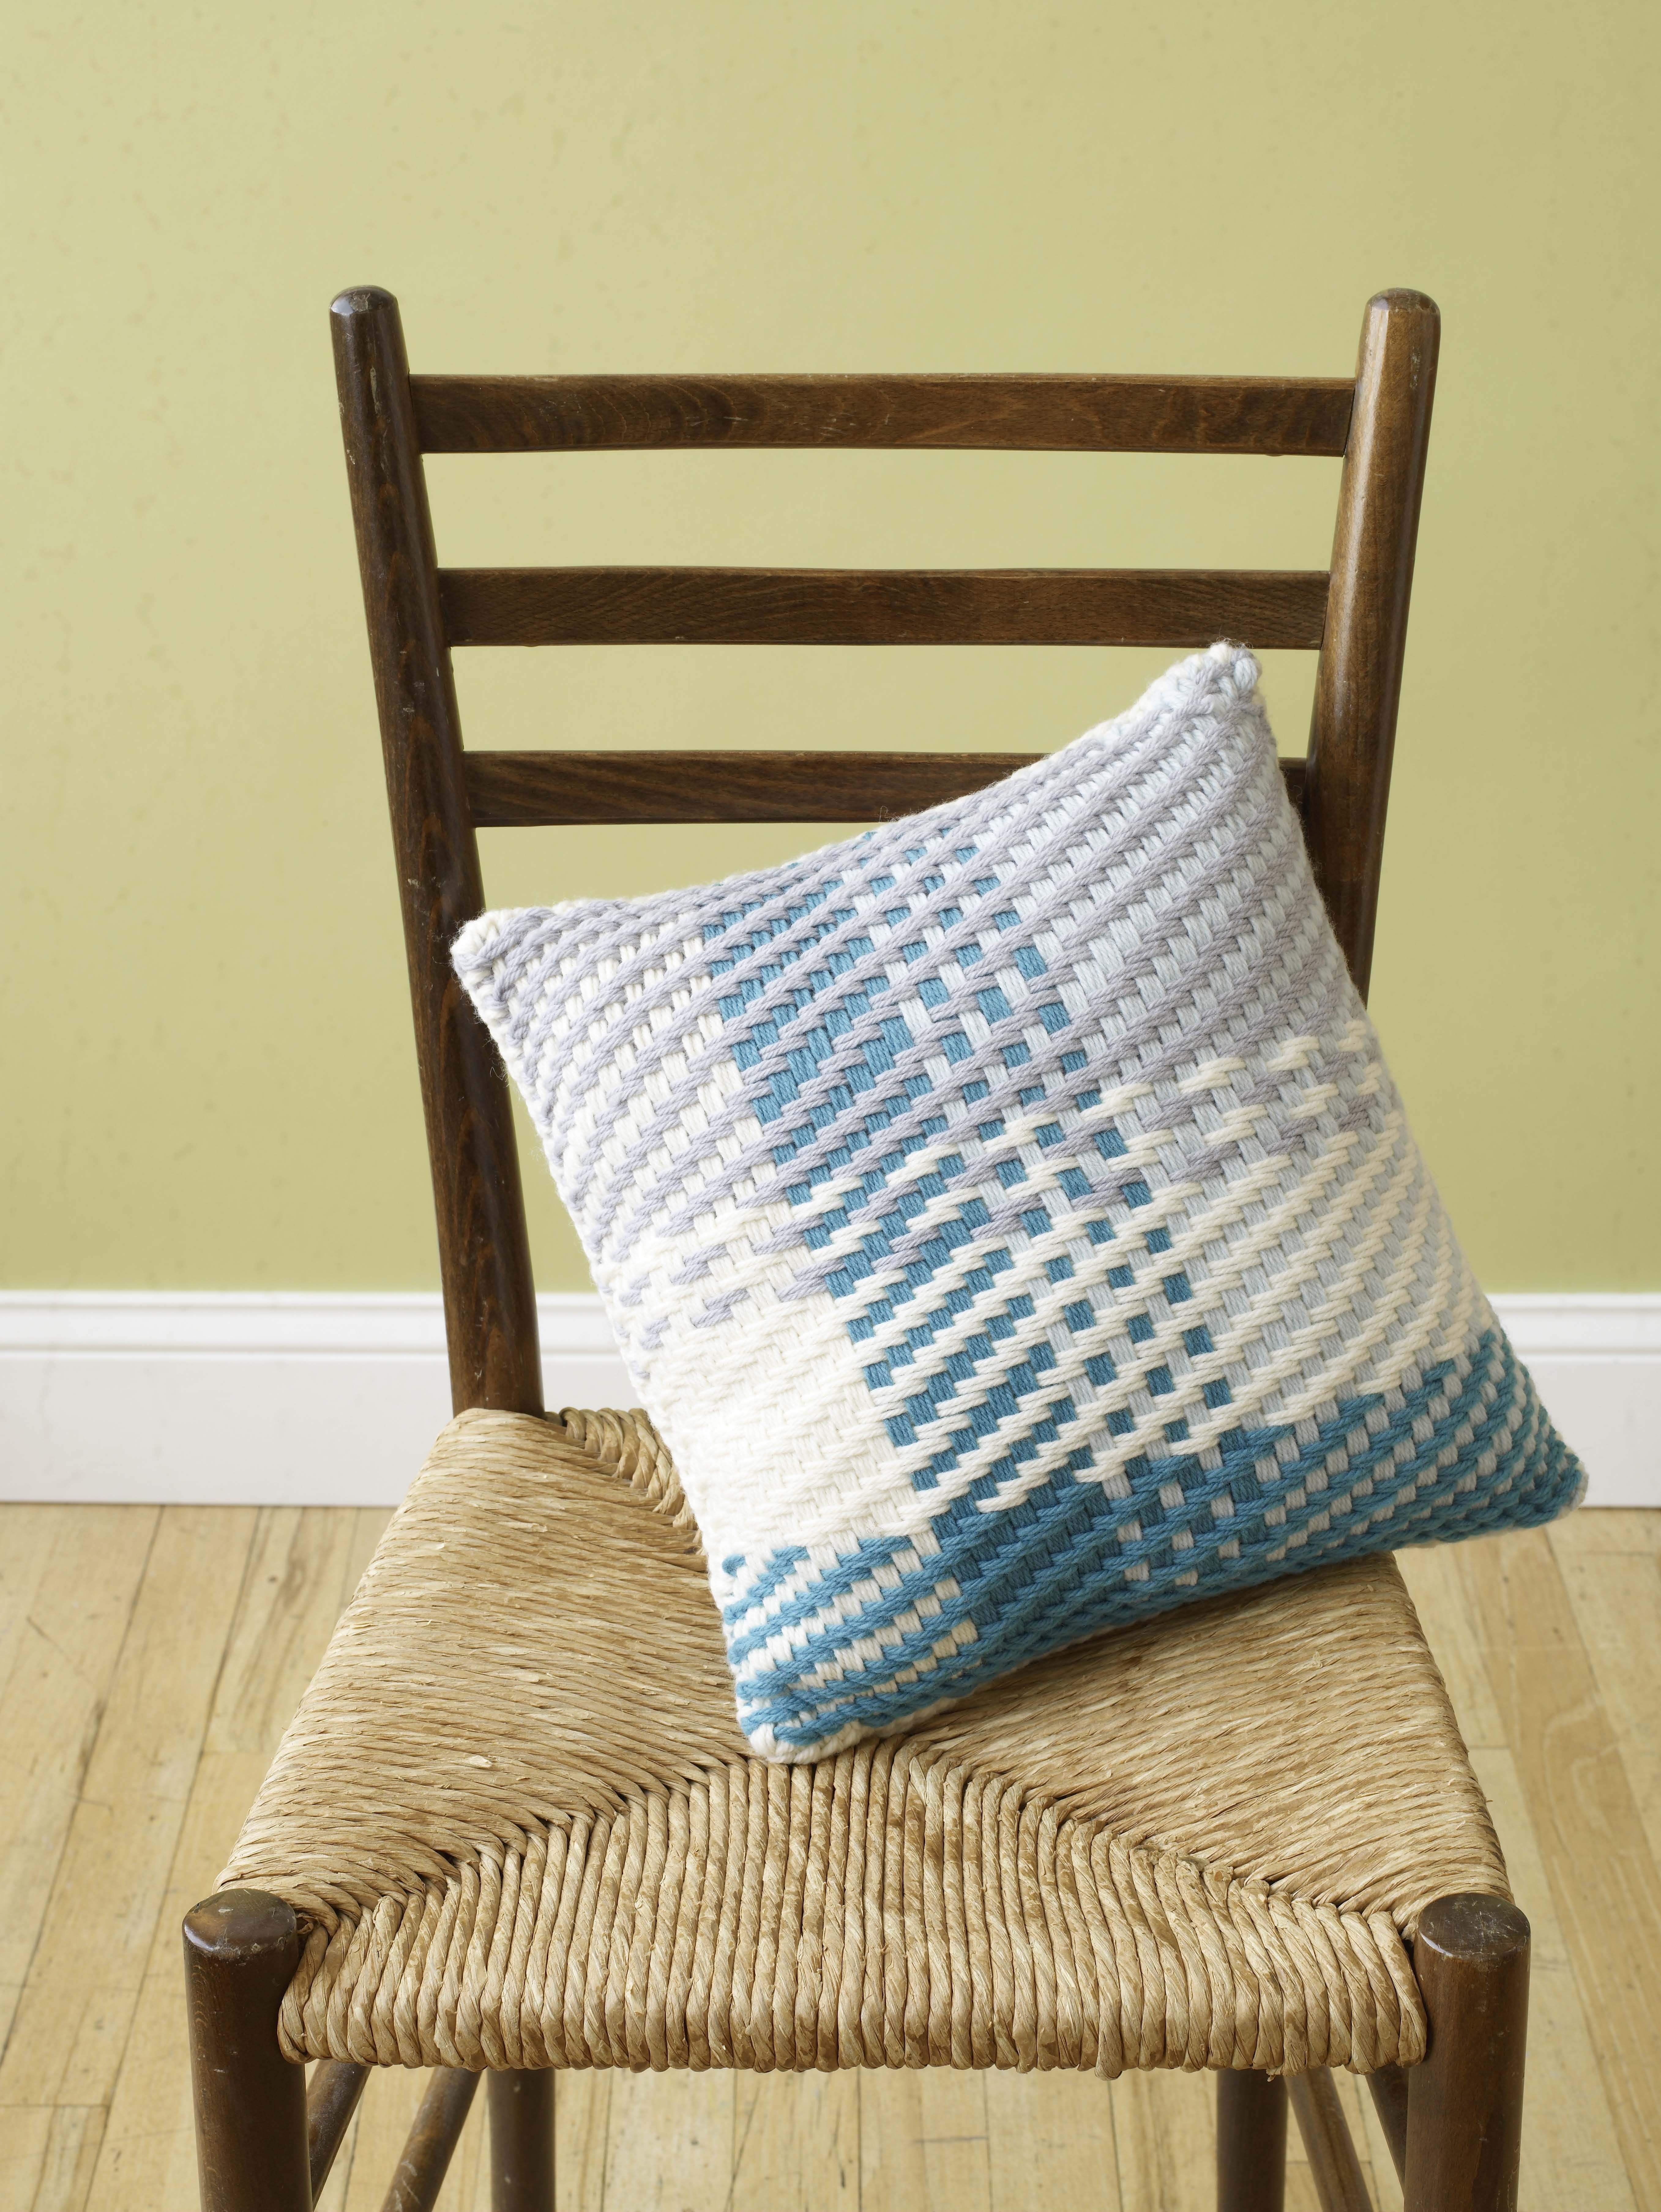 Martha Stewart Crafts Knit and Weave Loom creates one-of-a-kind home ...